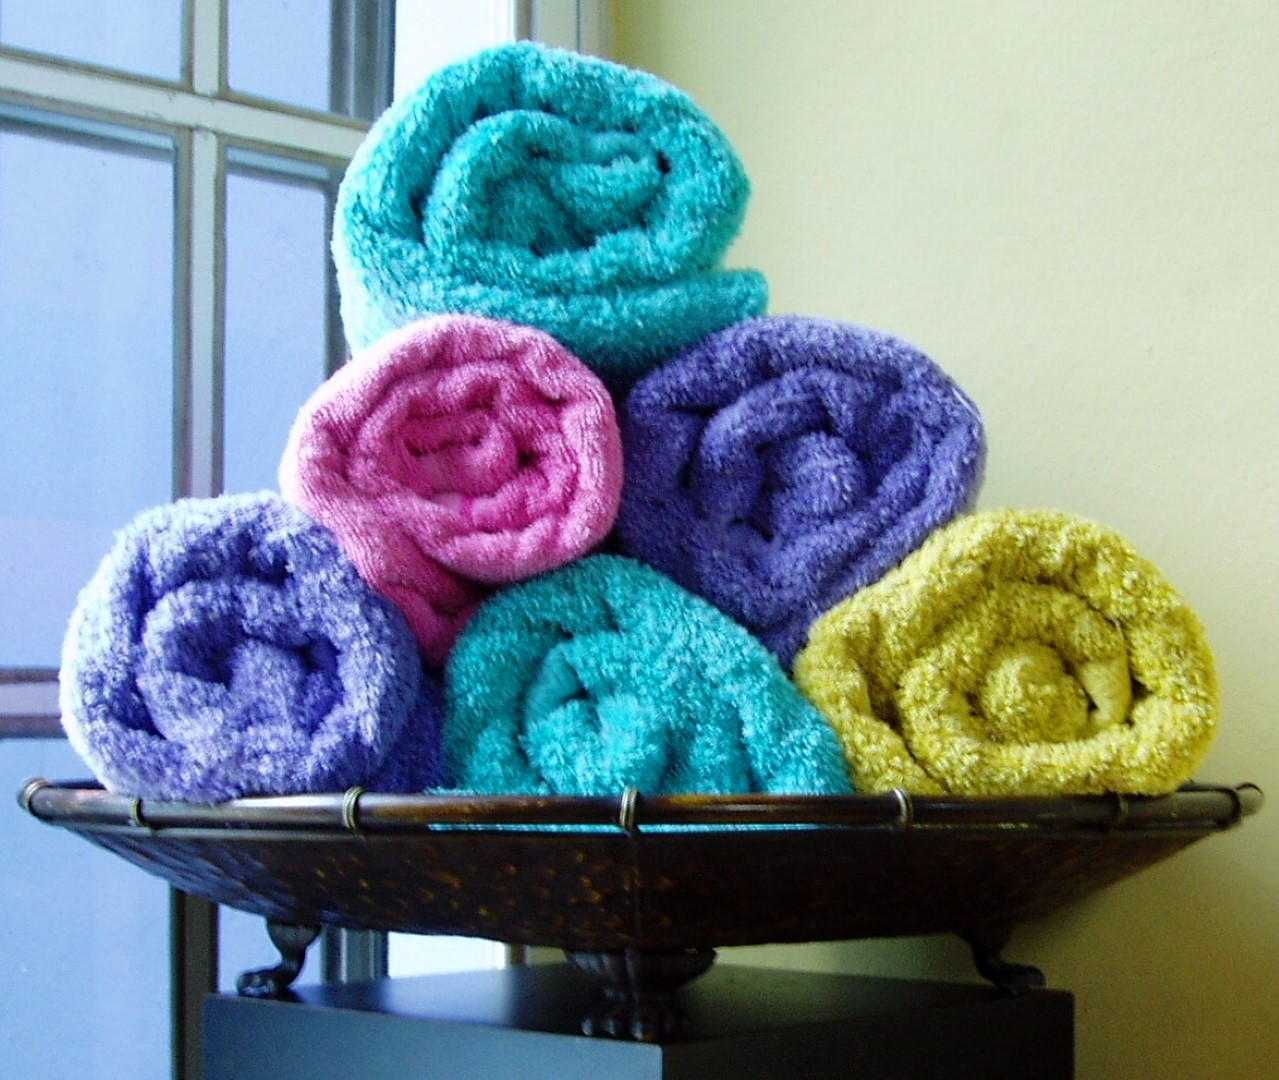 Different coloured towels rolled up